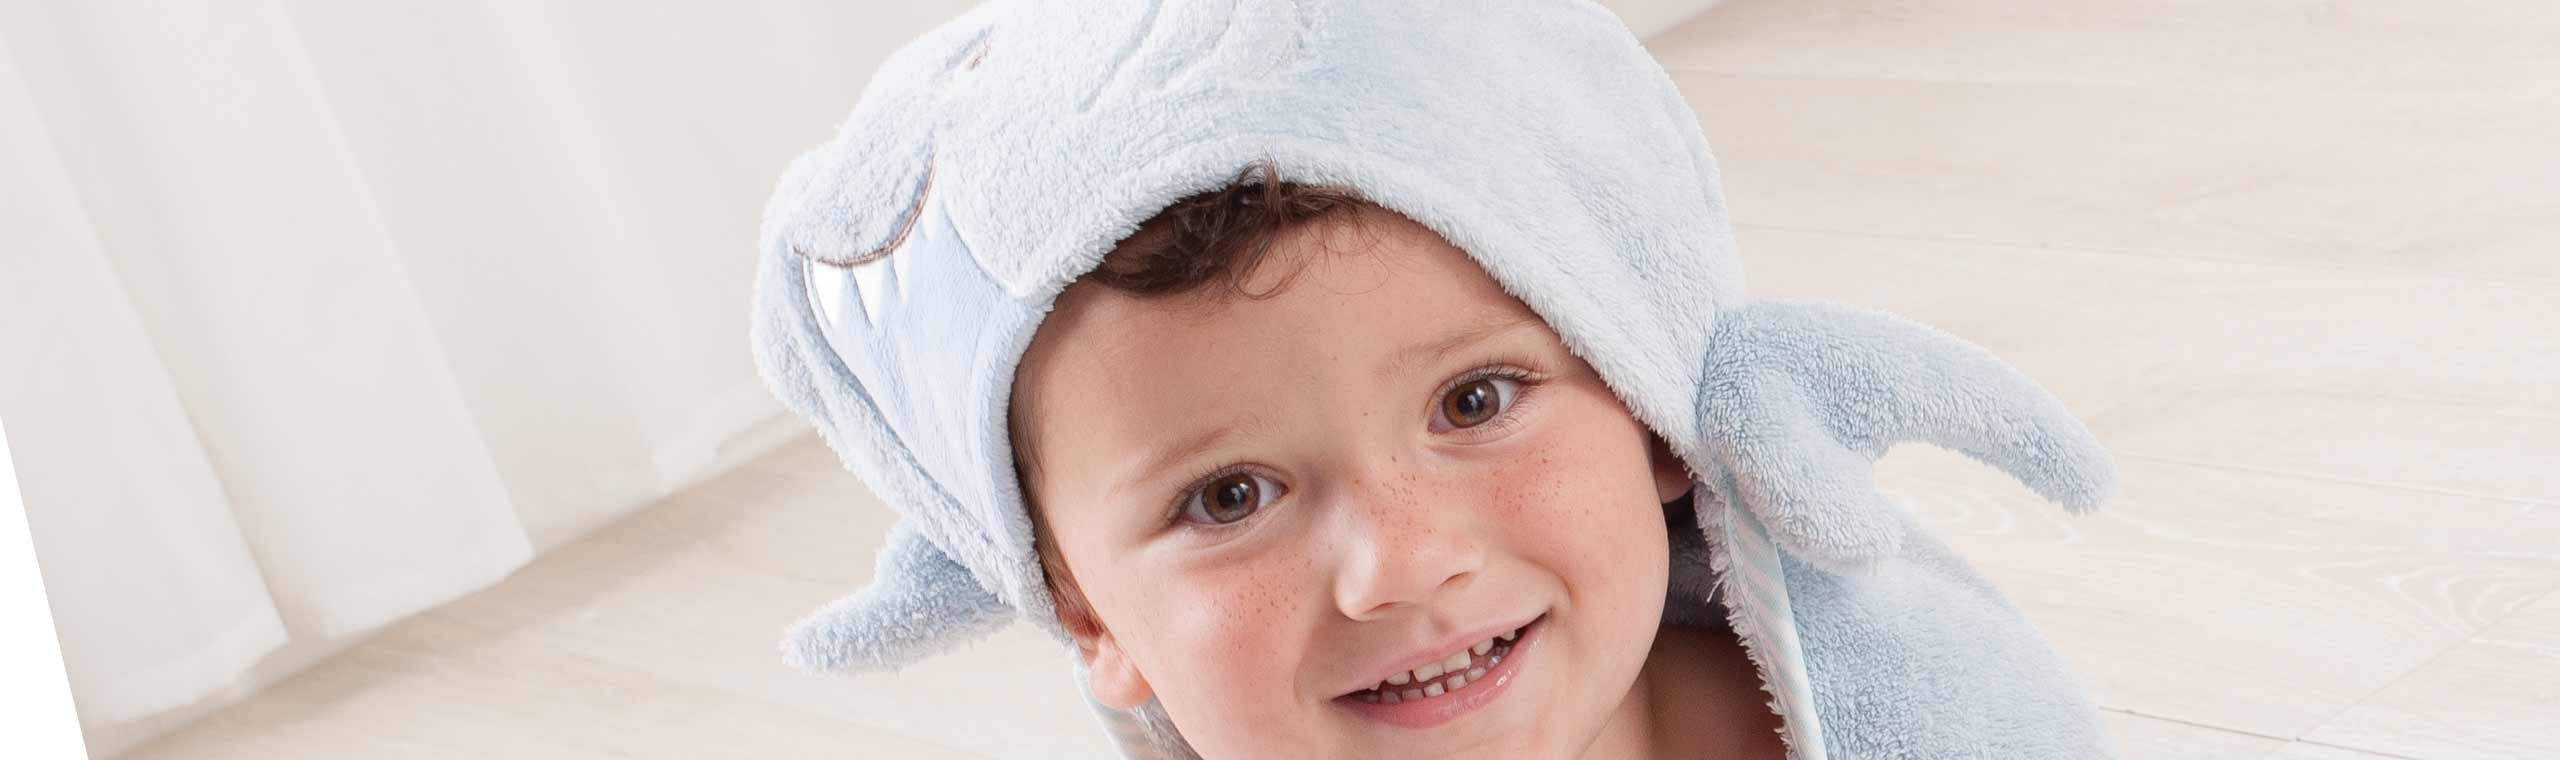 Boy wearing blue shark hooded towel on his head